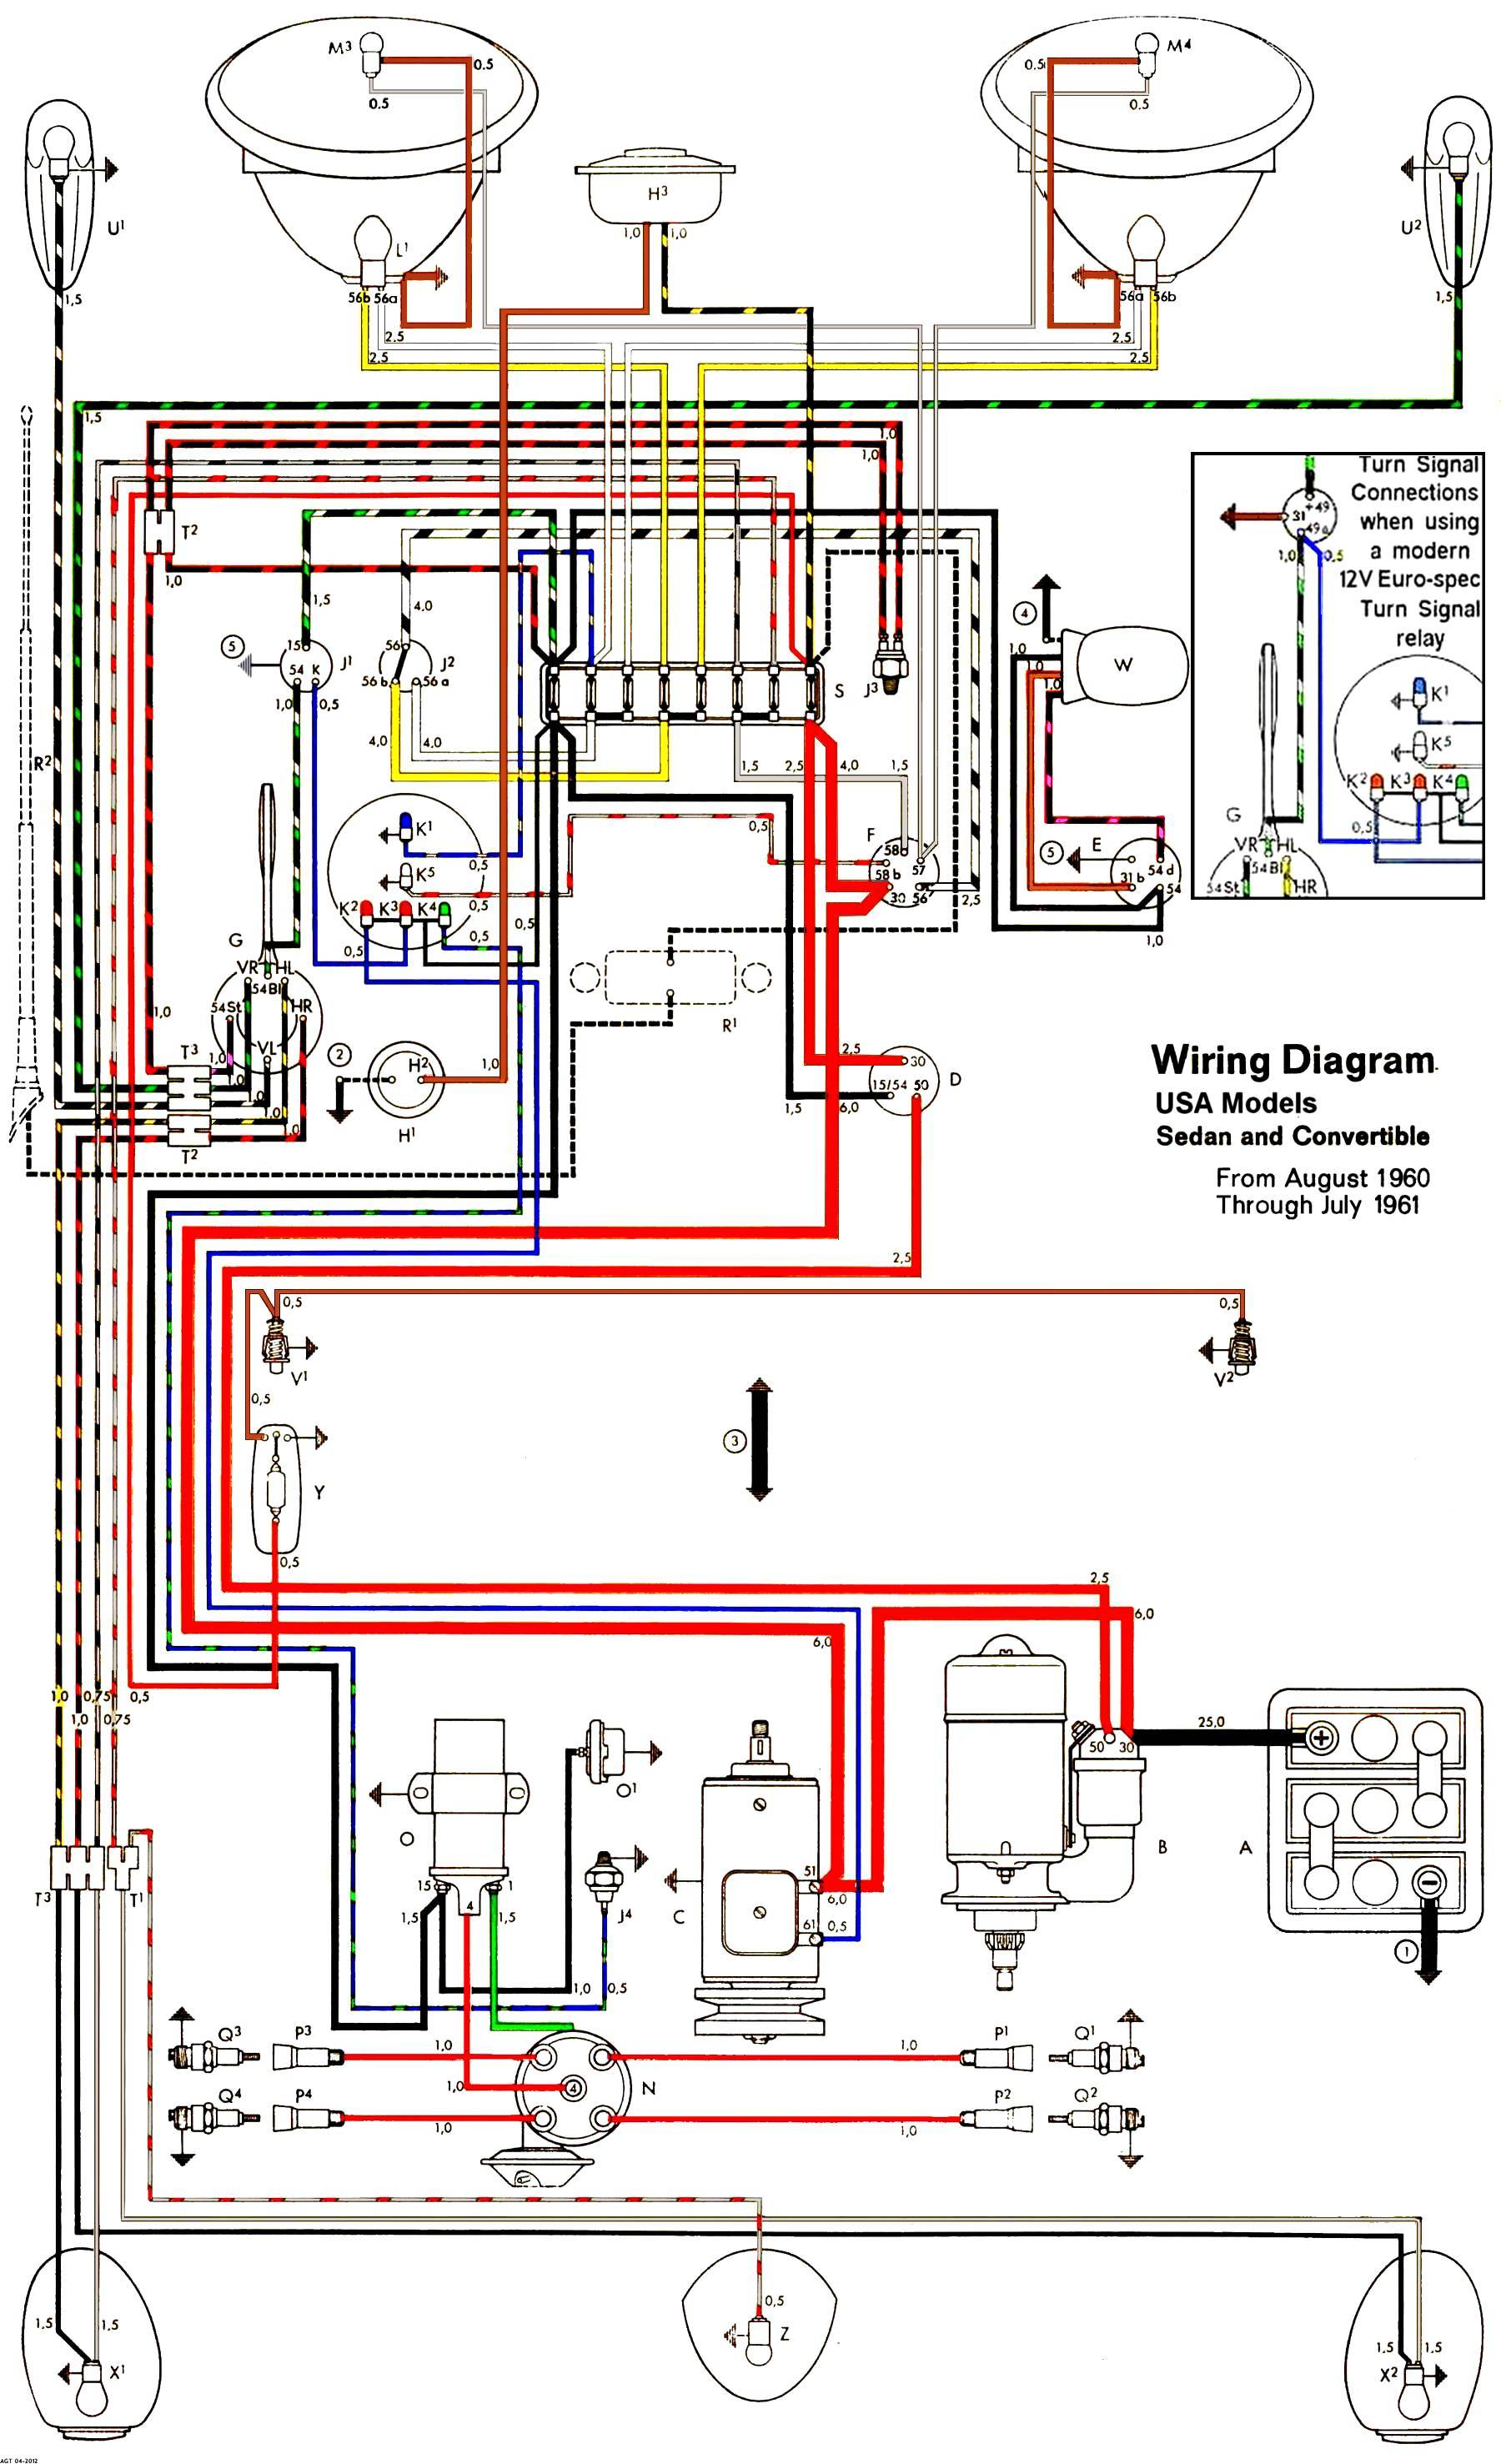 Vw Beetle Fuse Diagram Getting Ready With Wiring 2014 Thesamba Com Type 1 Diagrams Rh 2012